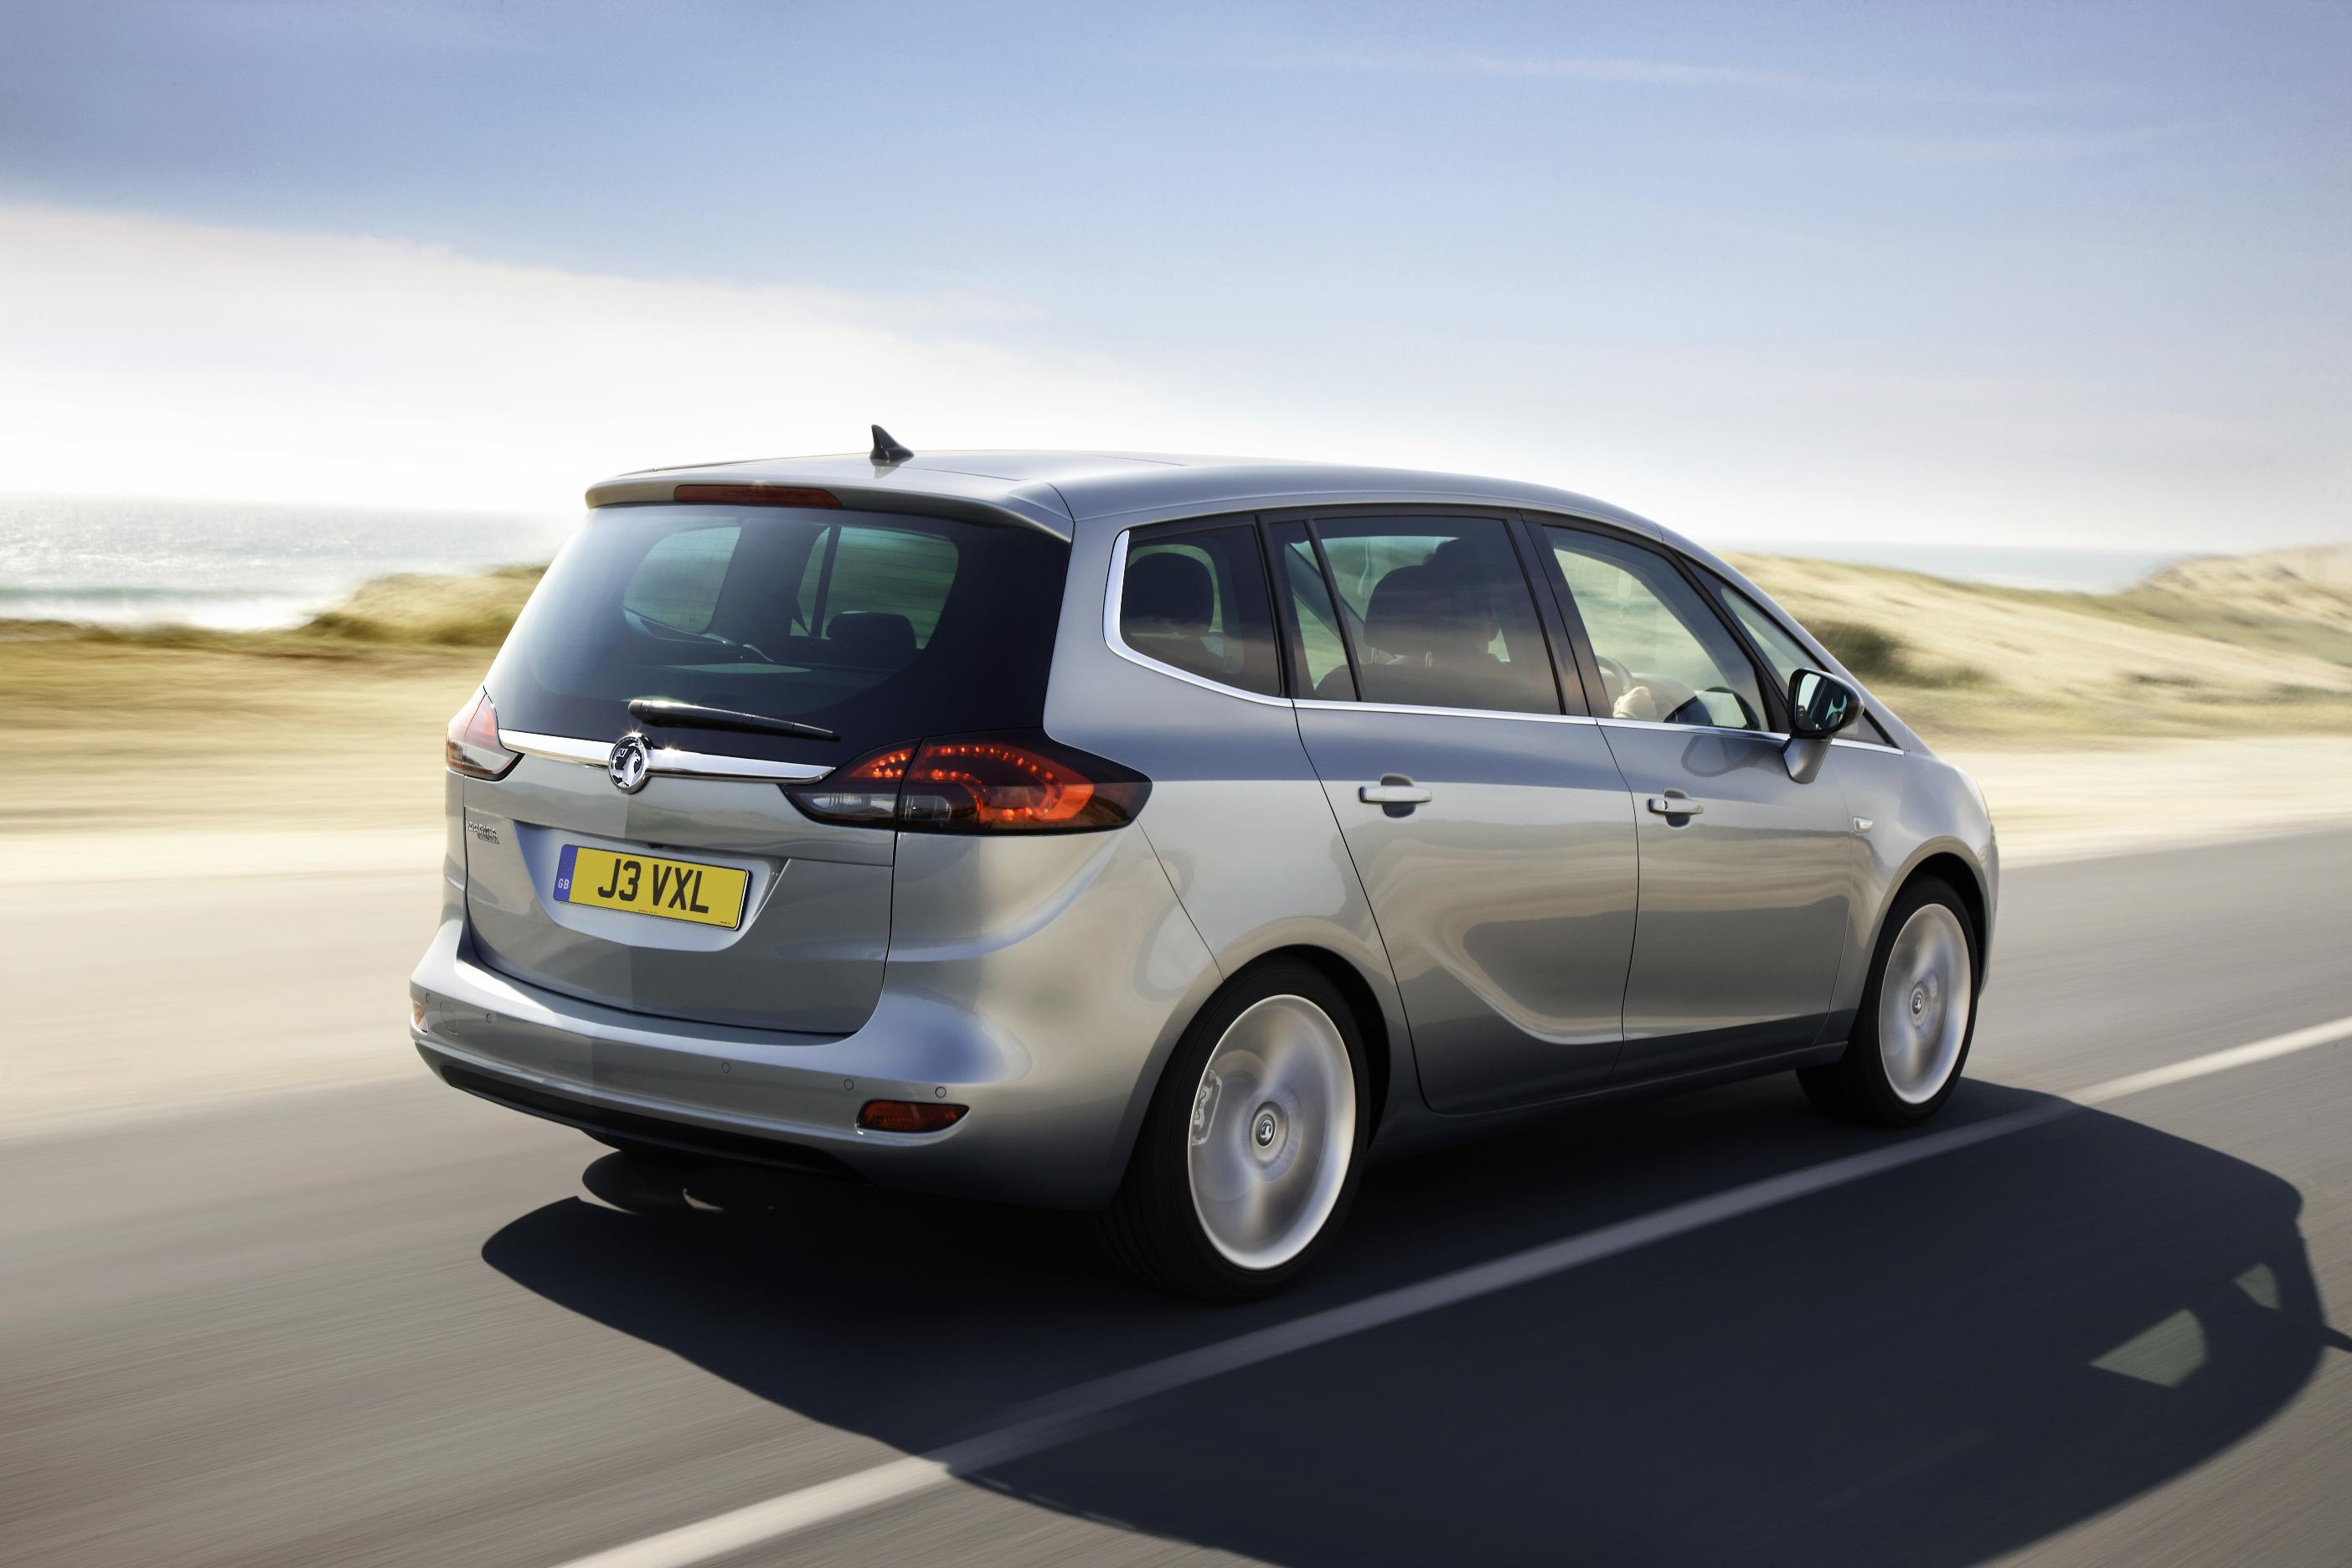 Zafira Tourer Adds To Vauxhalls Mpv Line Up Wheel World Reviews Vauxhall Boot Smart